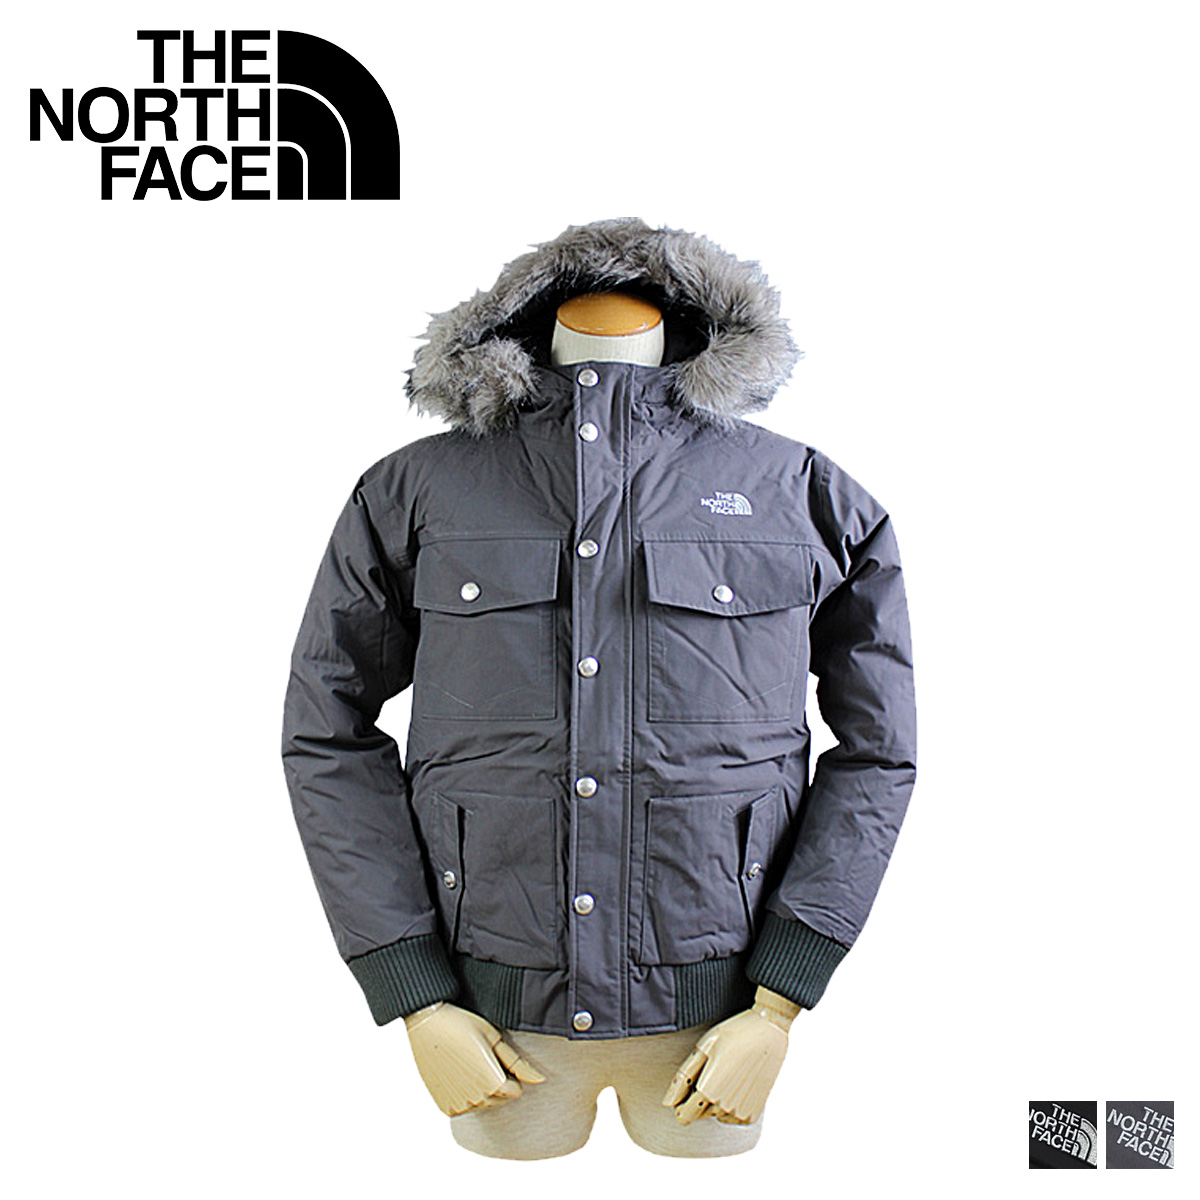 f2dda26fe Whats up Sports   SOLD OUT  ザノースフェイス THE NORTH FACE kids zip ...